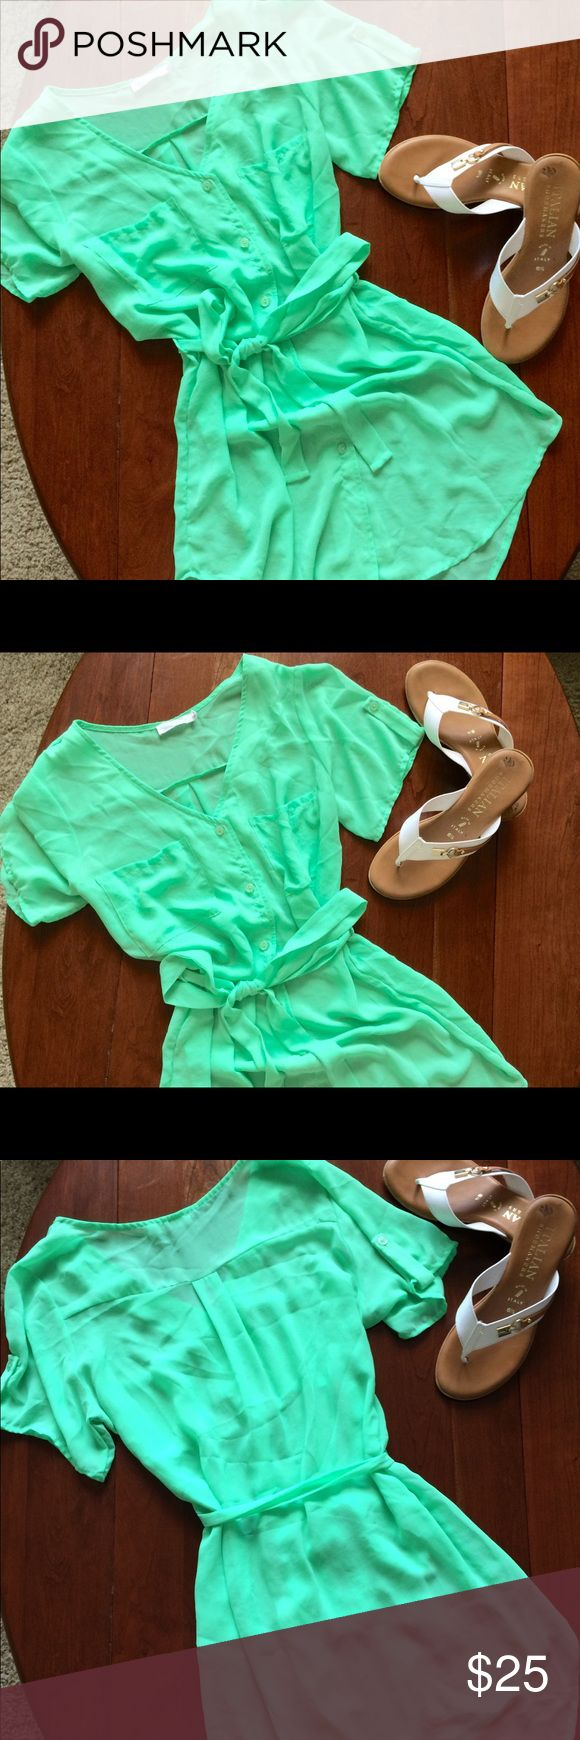 Lush Roll Tab Sleeve Shirt Dress in Neon Green Rare Lush tab sleeve shirt dress in neon green. This shirt dress by Lush is nearly impossible to find. It features a great v bodice with front pockets and tab sleeves. It is in an eye catching neon green color that compliments your skin tone and catches everyone's gaze. You win't want to pass up this cute shirt dress which is perfect in the Fall with boots or in the Summer with flip flops. It is in great condition with care to be taken when…